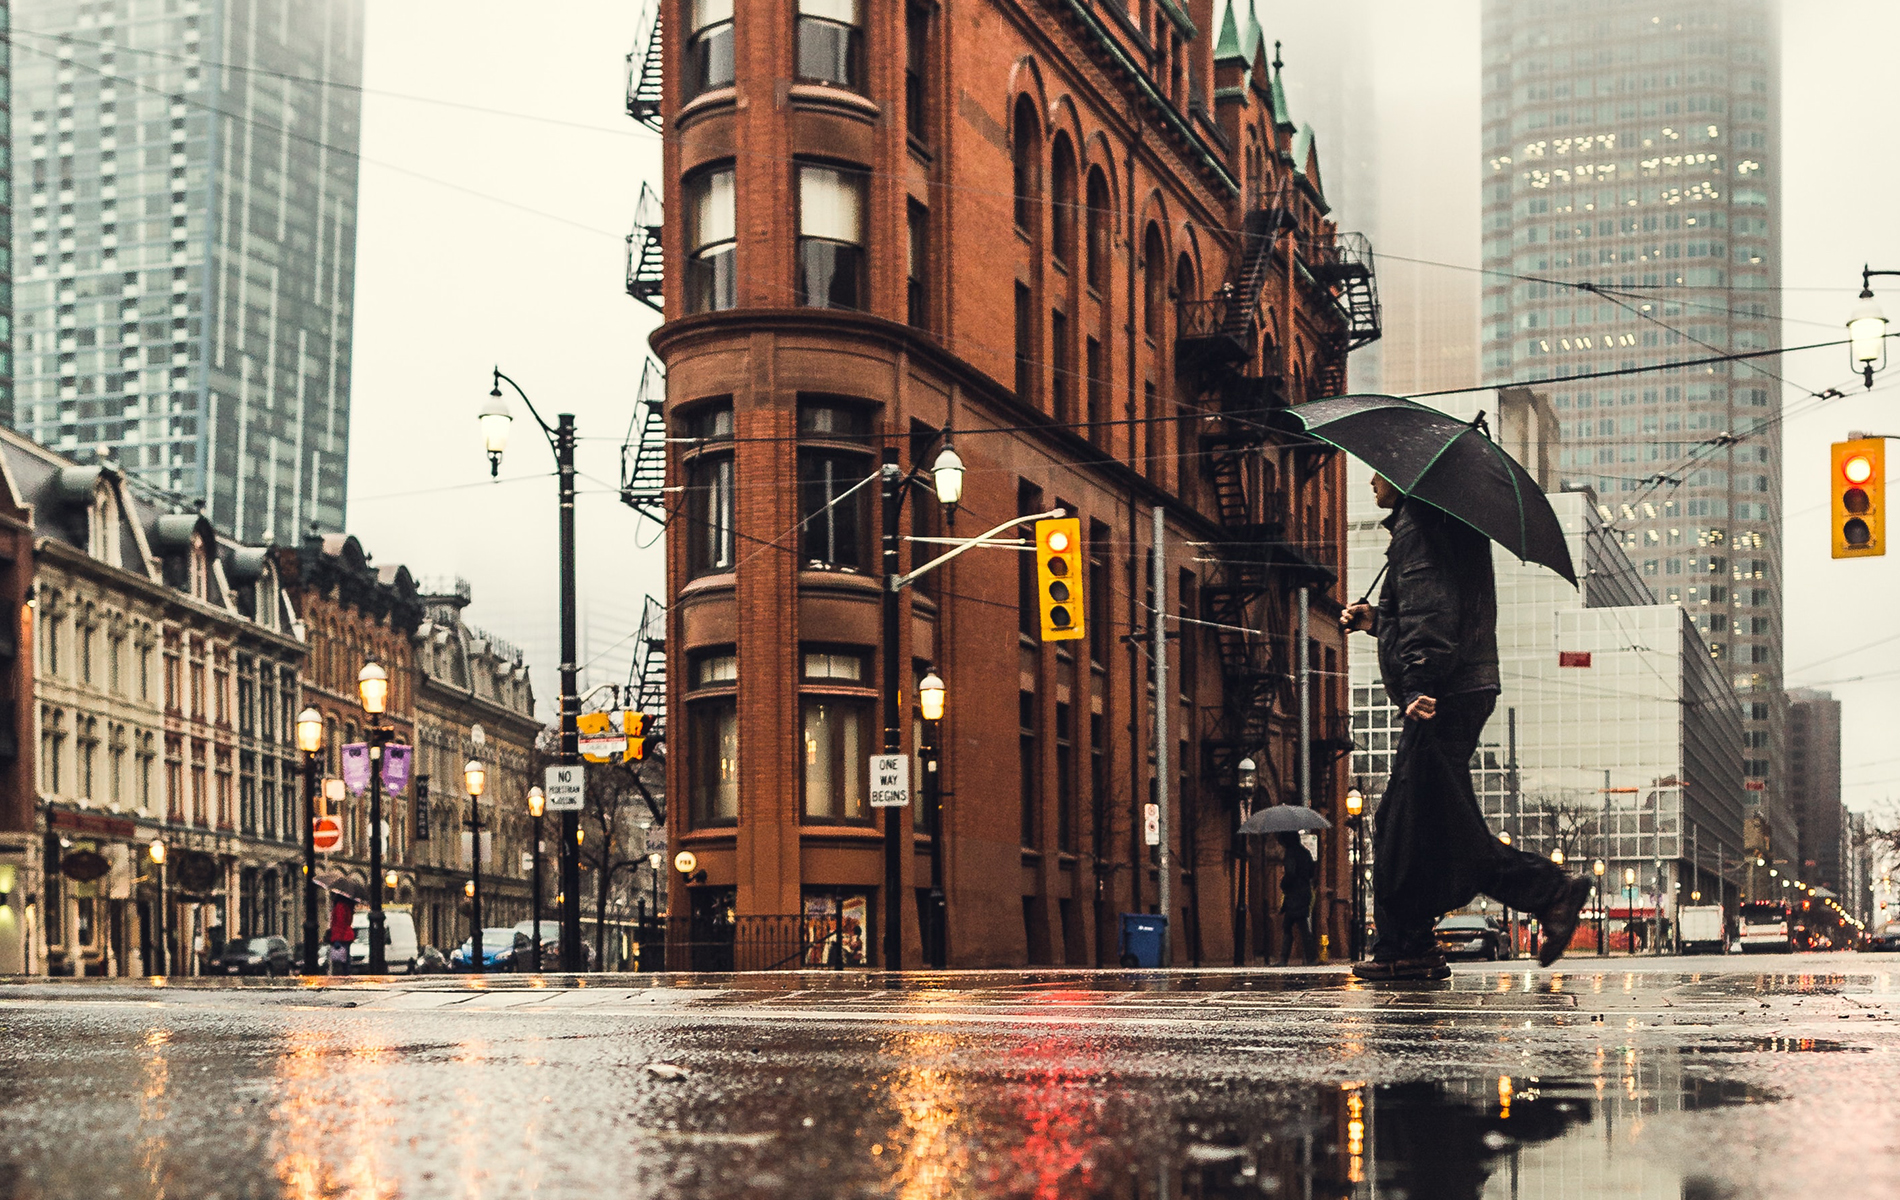 Person with umbrella walking across a busy, wet intersection